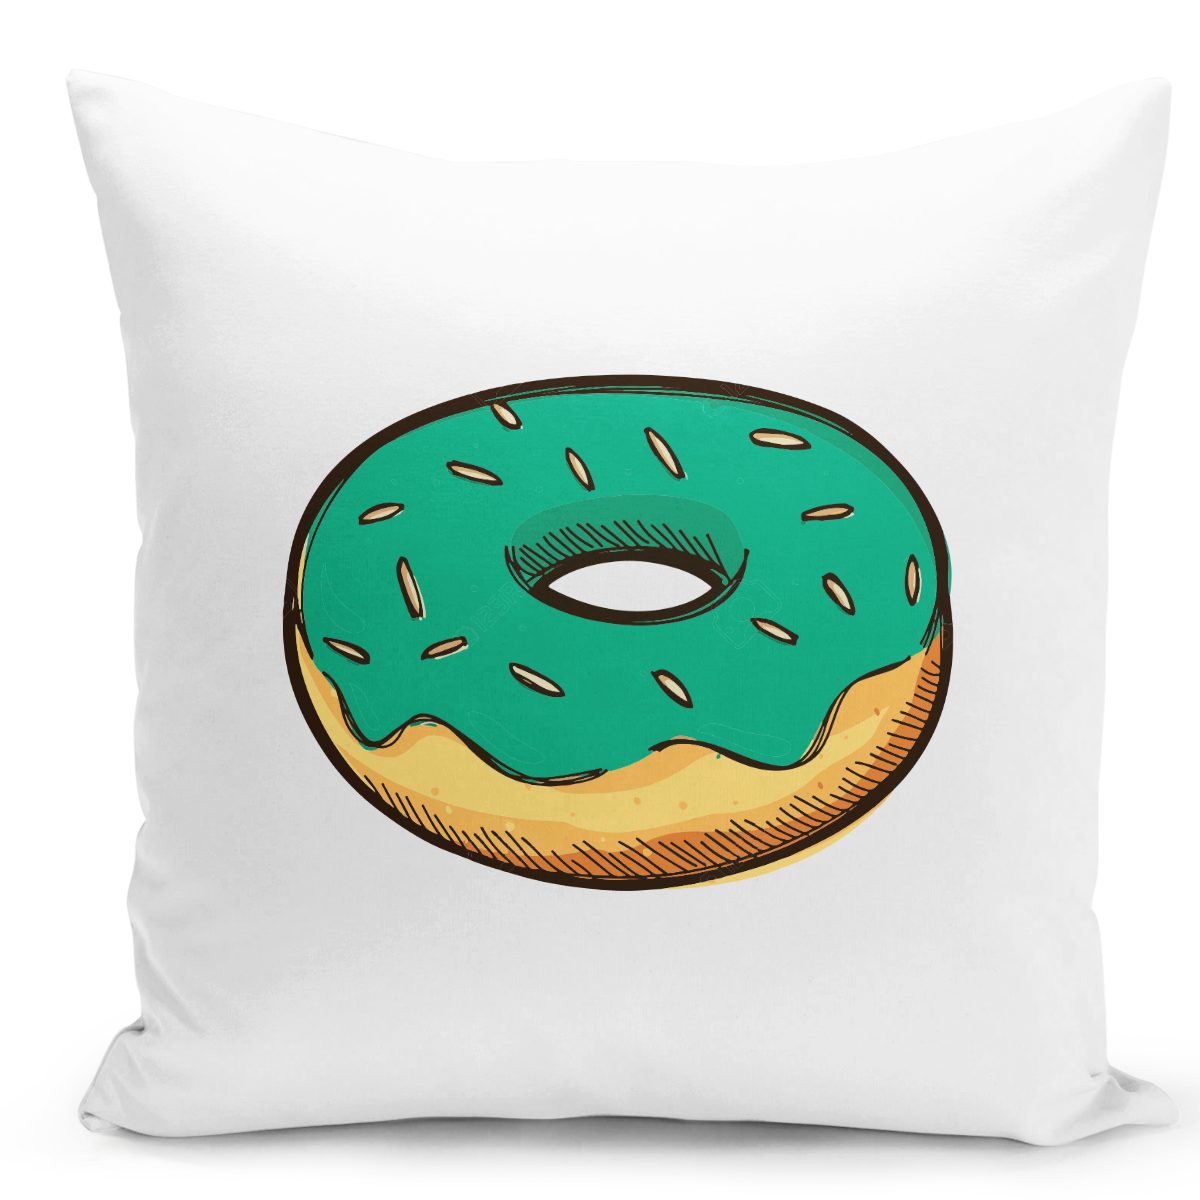 White-Throw-Pillow-Green-Donut-Lovers---Pure-White-Printed-16-x-16-inch-Square-Home-Decor-Couch-Pillow-